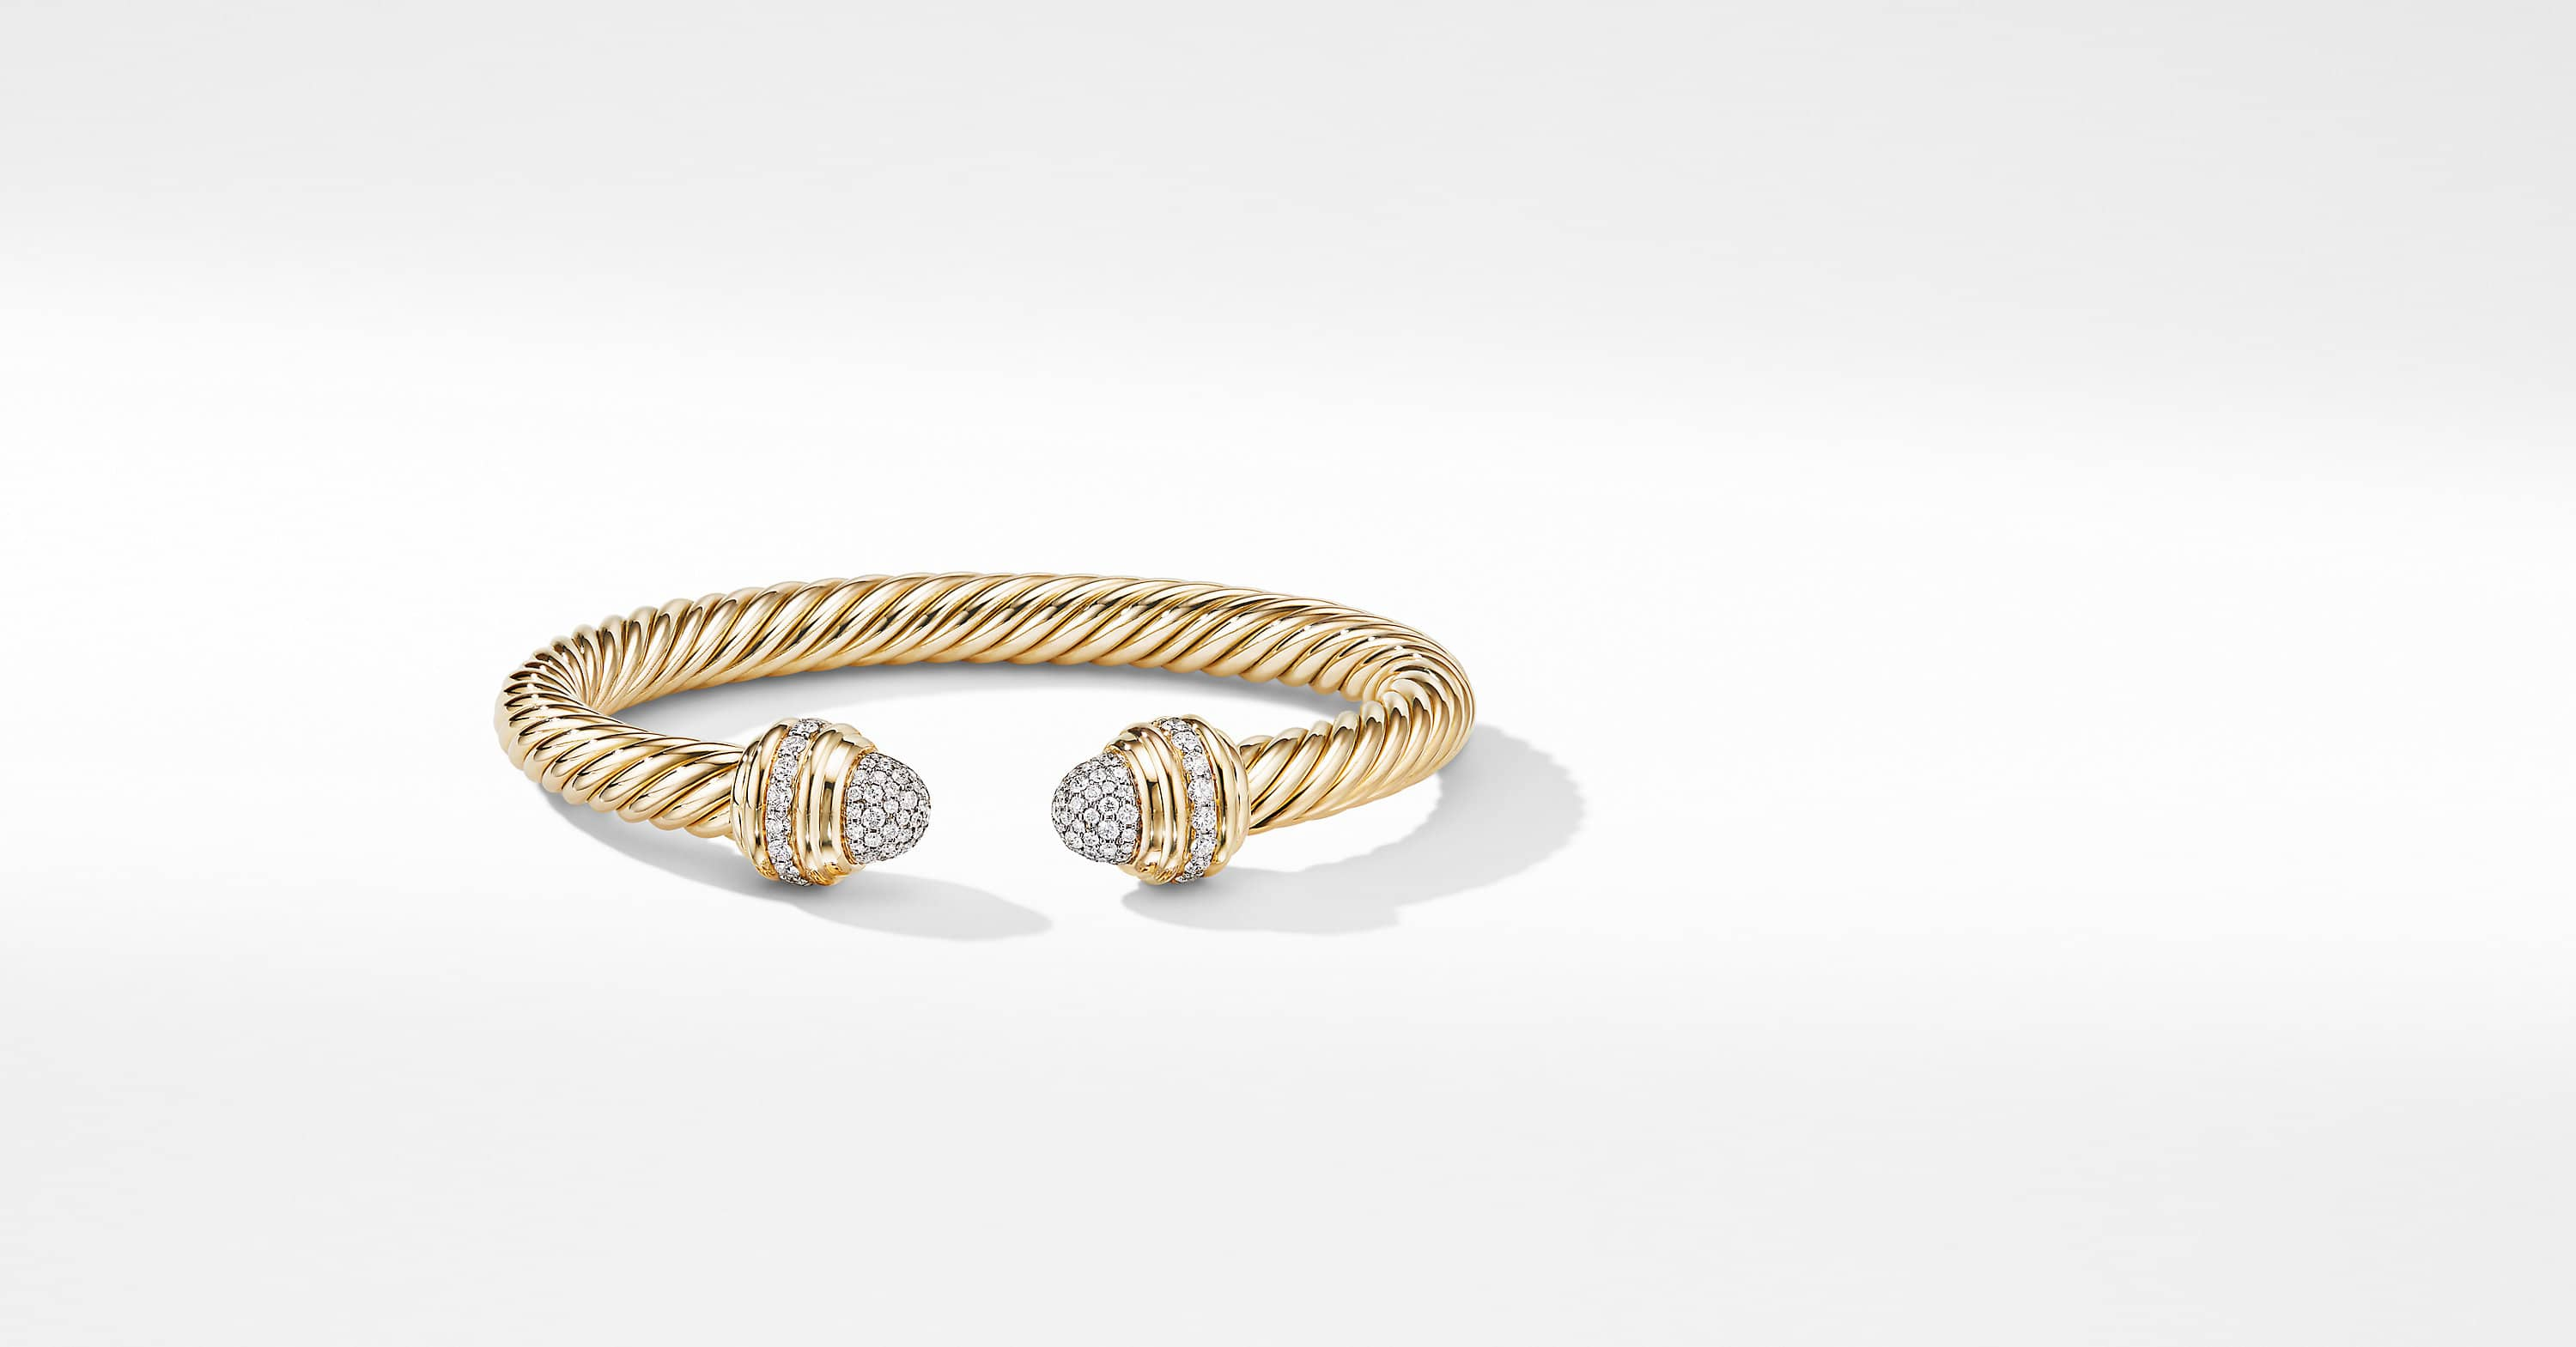 Cable Bracelet in 18K Yellow Gold with Diamonds, 7mm